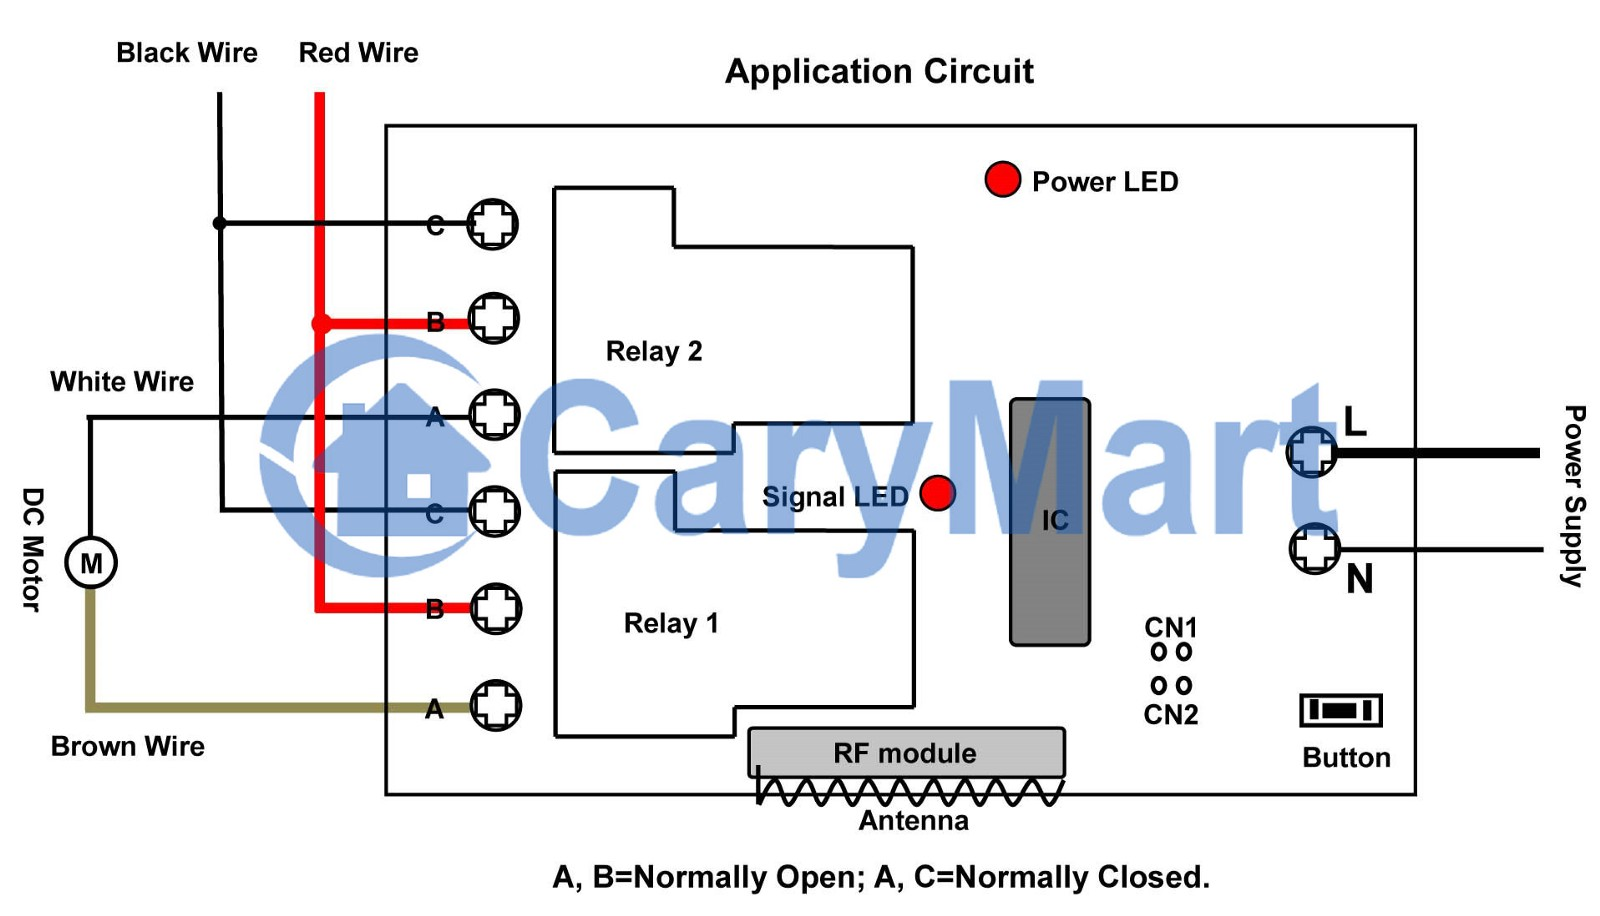 hight resolution of so we drew a wiring diagram the black and red wires picture above will be connected to terminals c and terminals b on relay 1 relay 2 respectively